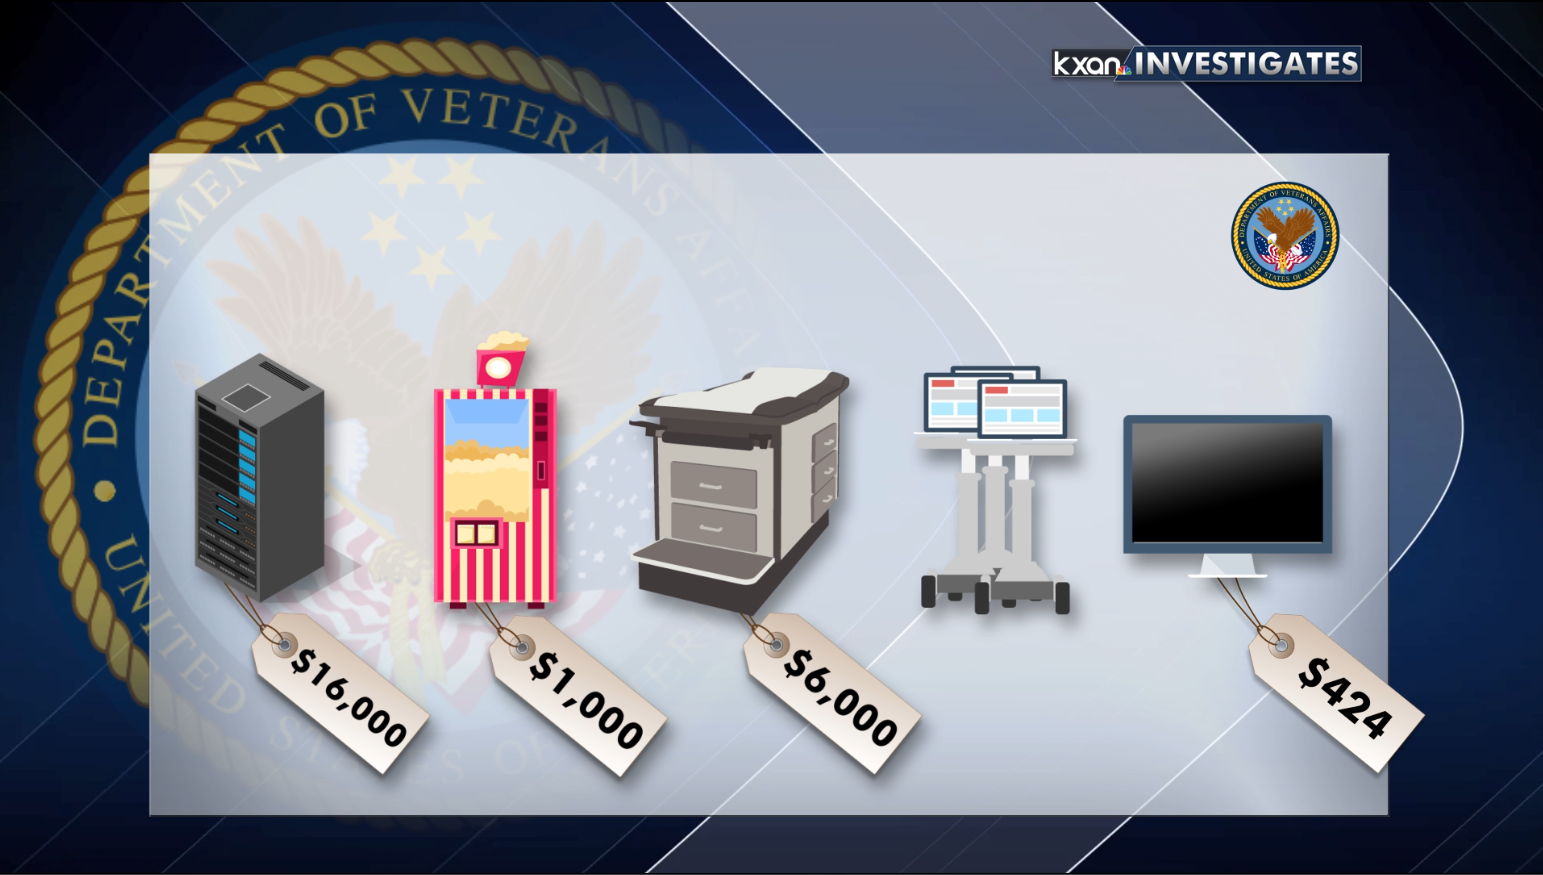 Equipment missing from central Texas VA locations includes a $16,000 computer server, a $1,000 pocorn machine, a $6,000 exam table, medical carts, and a TV. (KXAN Photo)